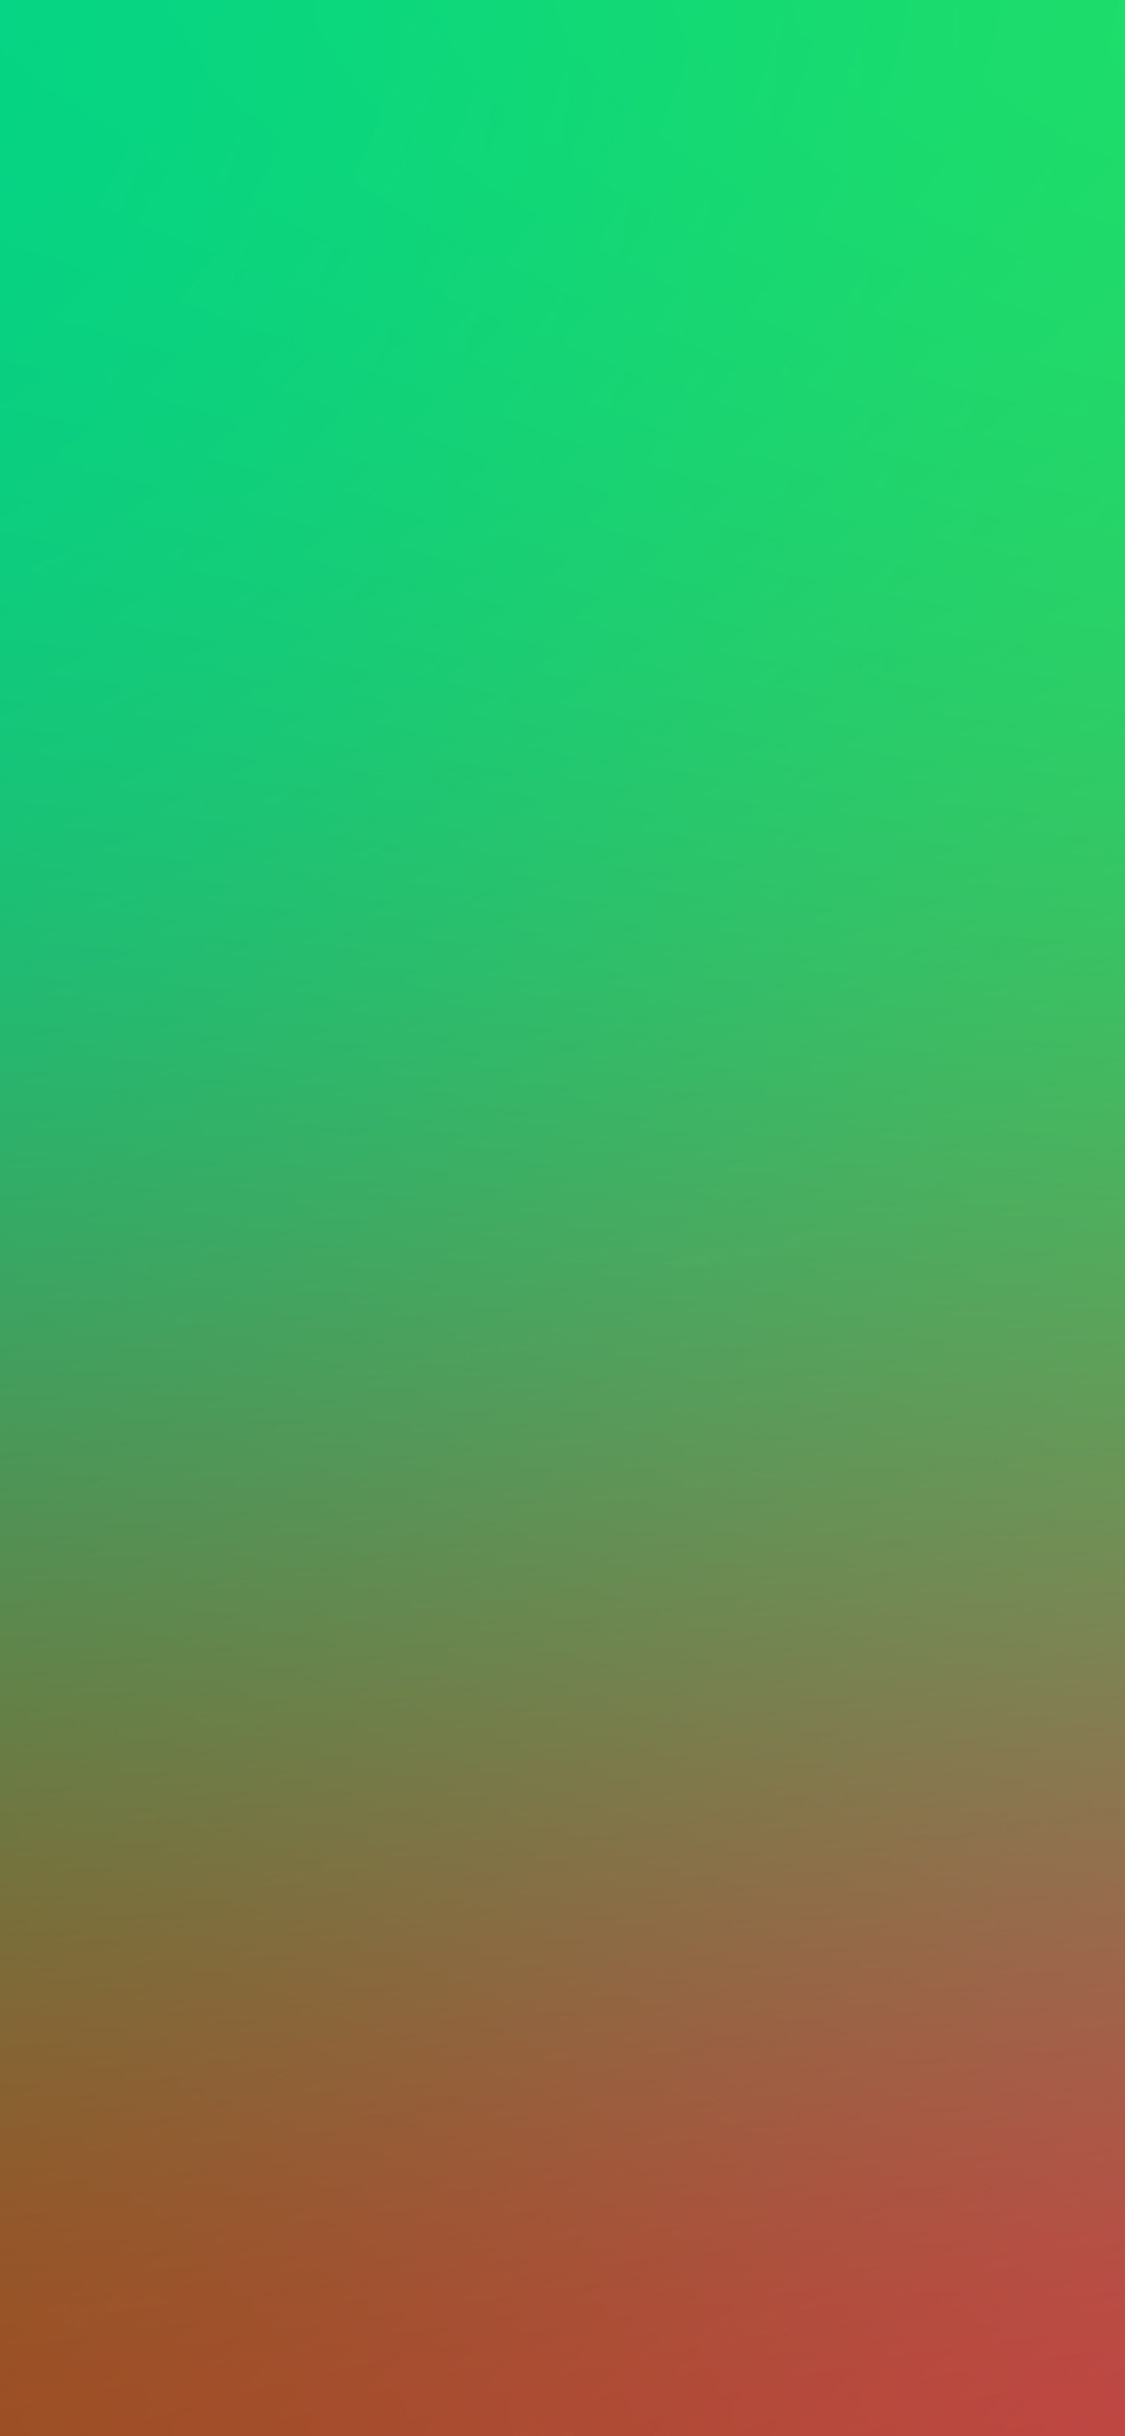 iPhoneXpapers.com-Apple-iPhone-wallpaper-sc59-salsa-is-the-spanish-term-for-sauce-blur